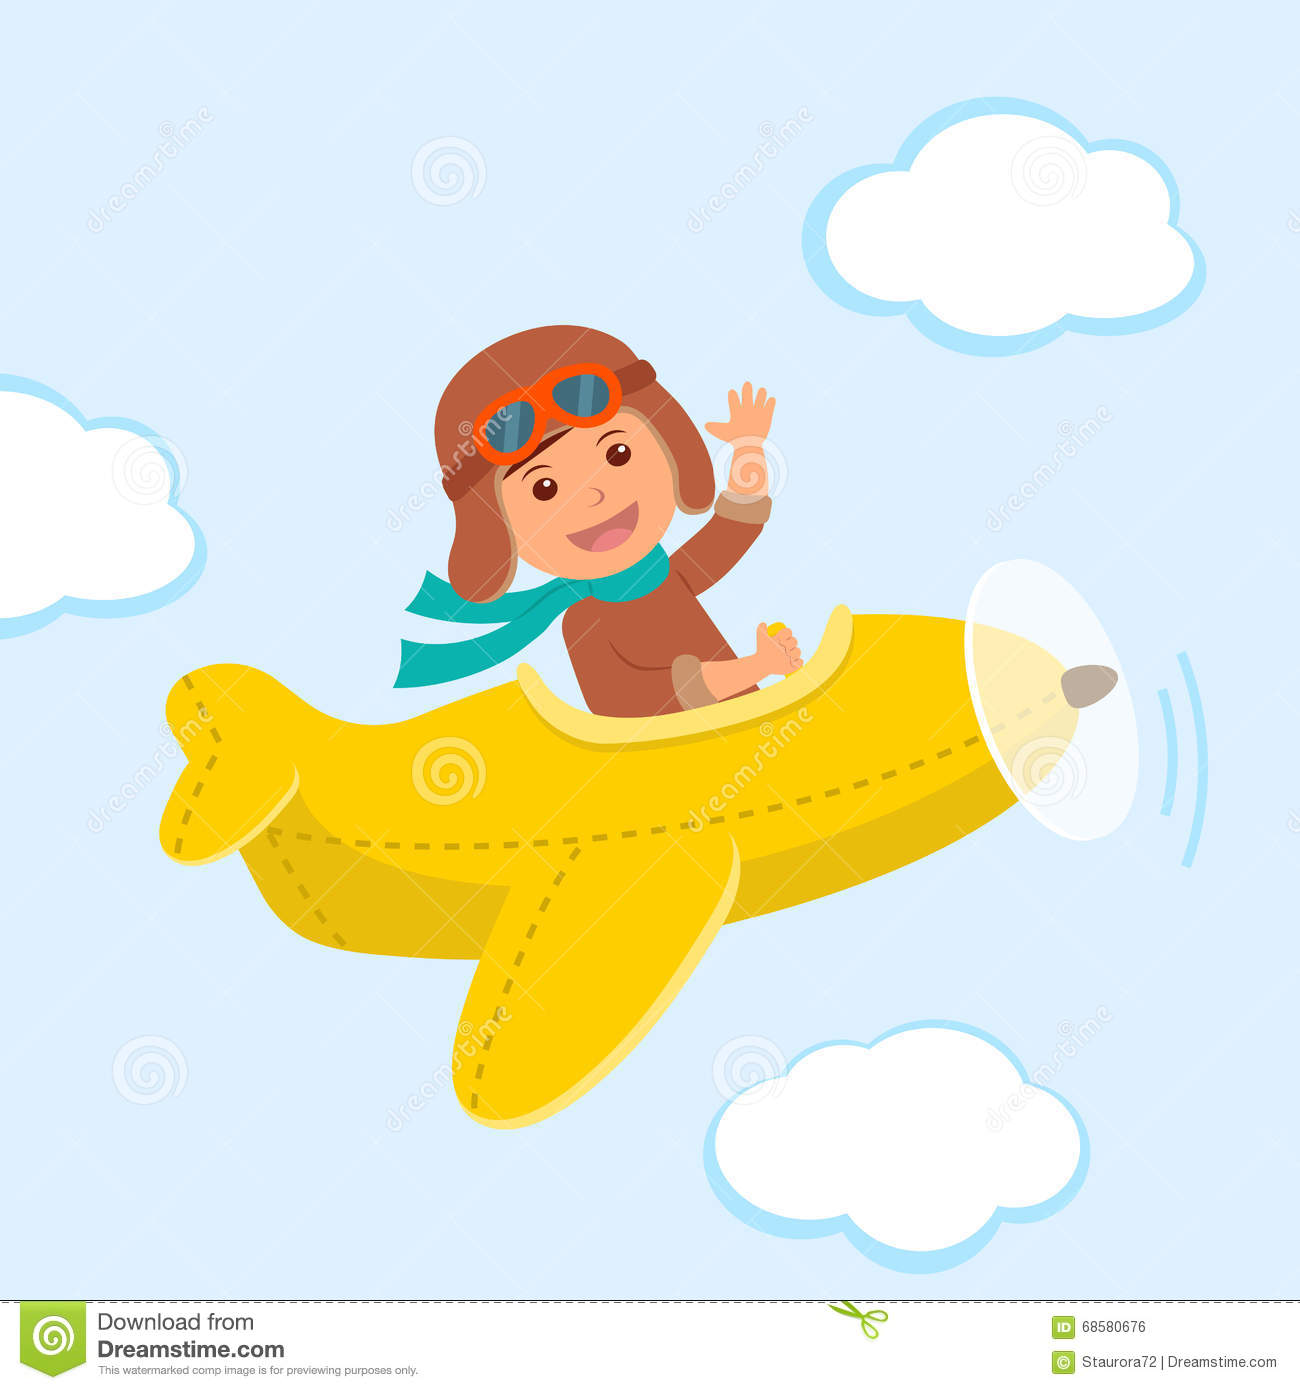 helicopter kid with Stock Illustration Cute Boy Pilot Flies Yellow Plane Sky Air Adventure Image68580676 on Color Click Capture Photography Challenge Pink furthermore Huge Bug In Kids Ear Gross Video additionally The Scorpion 3 Hoverbike A Human Carrying Drone in addition Suds additionally 503629170801754769.